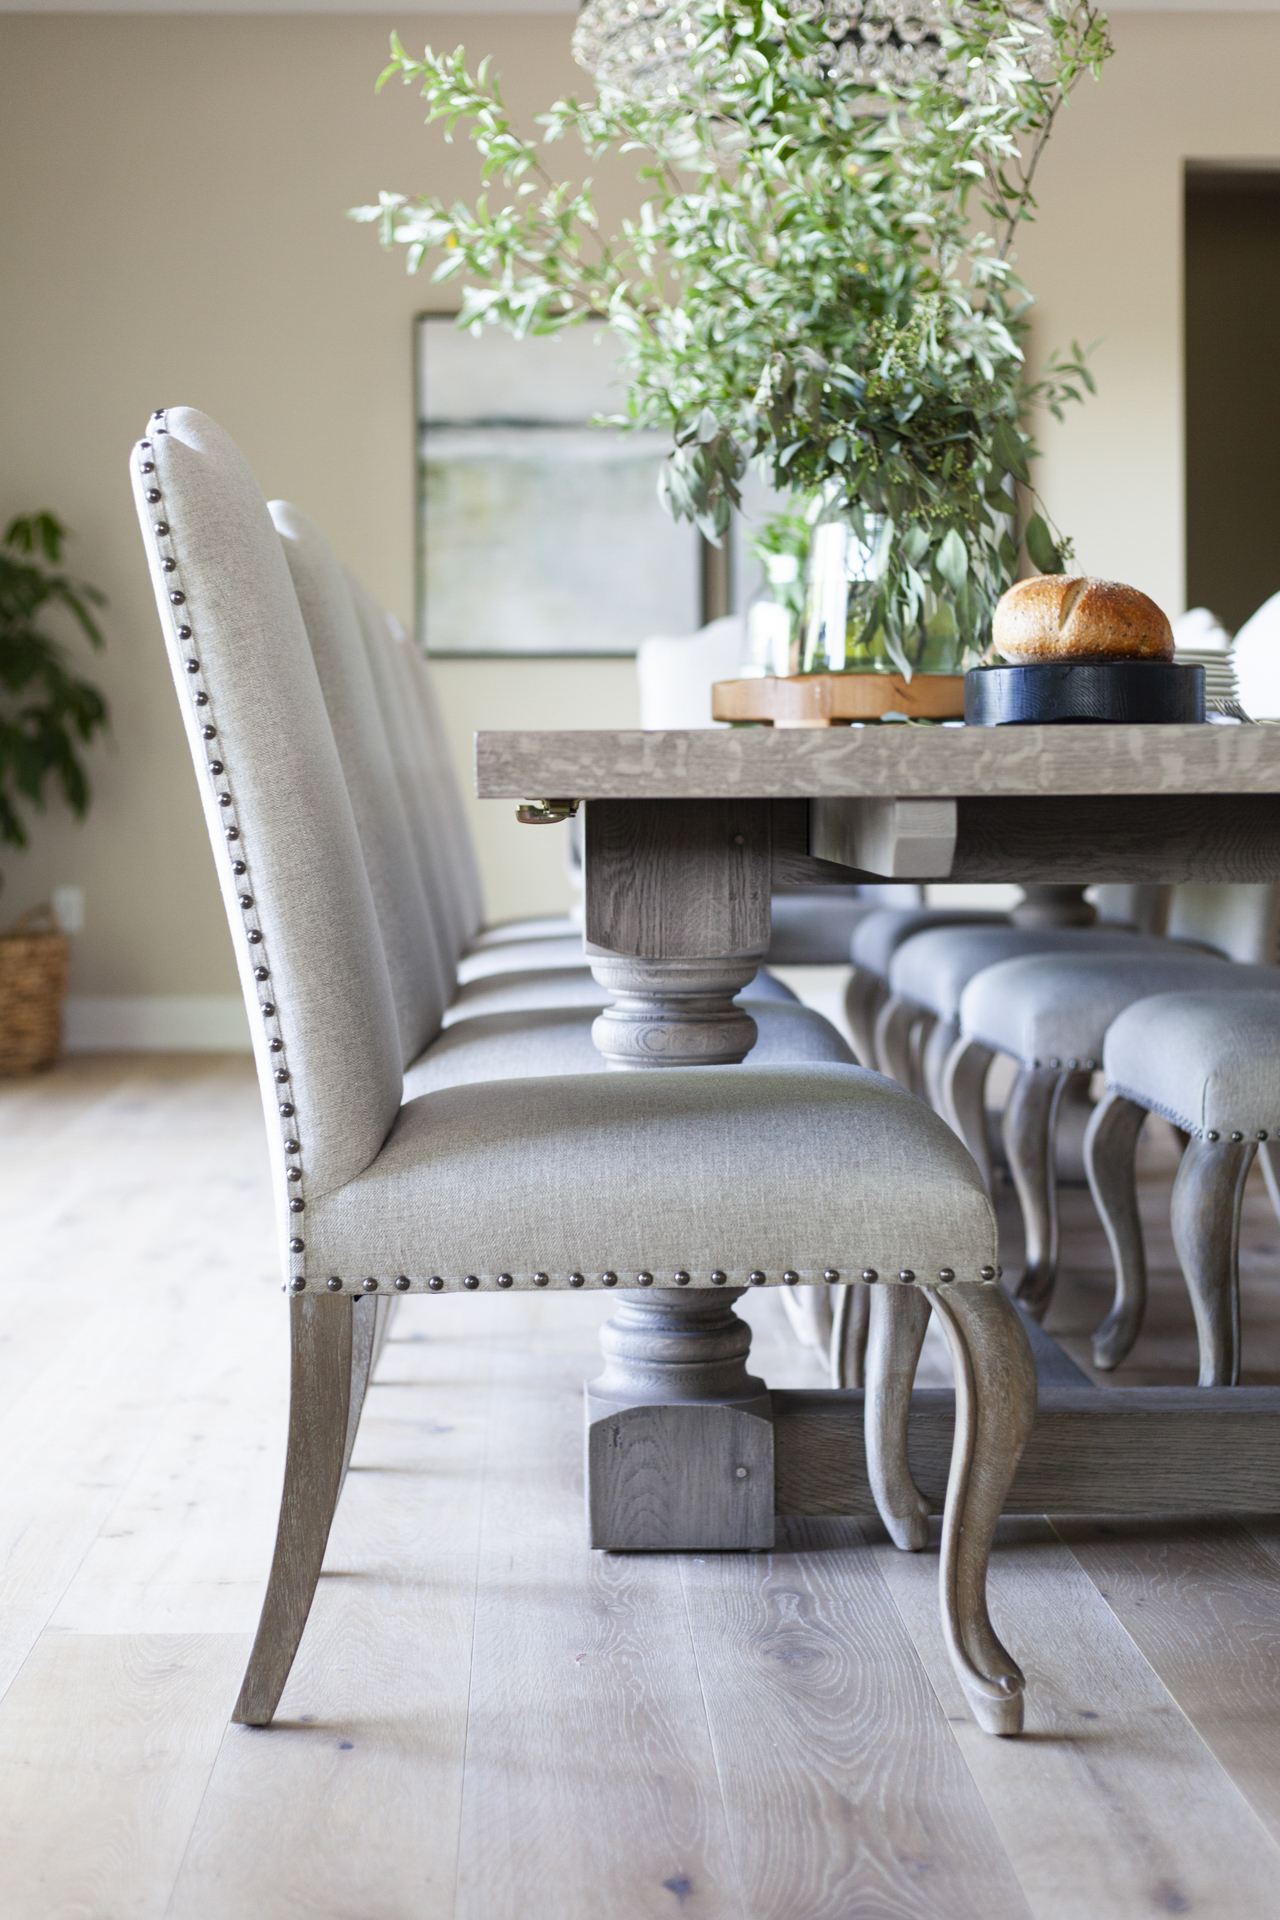 before-and-after-home-reveal-scout-and-nimble-lake-view-luxe-country-interior-design-dining-room-dining-chairs-crypton-fabric.jpg